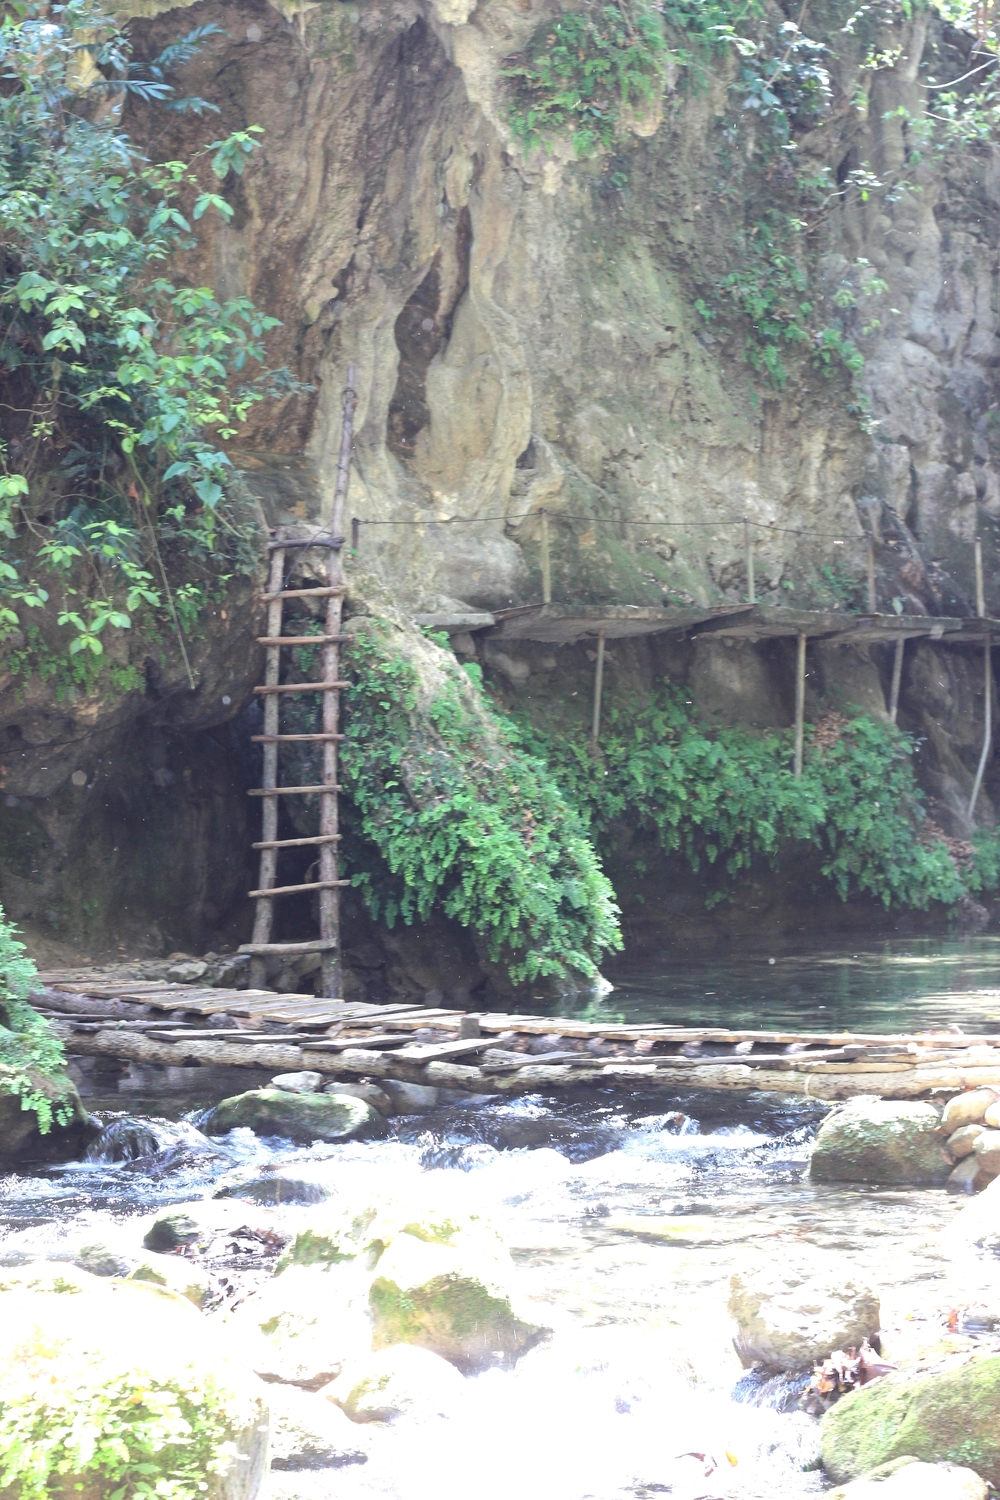 Ladder to foot bridge to more ladders across rivers on the way to Puente de Dios